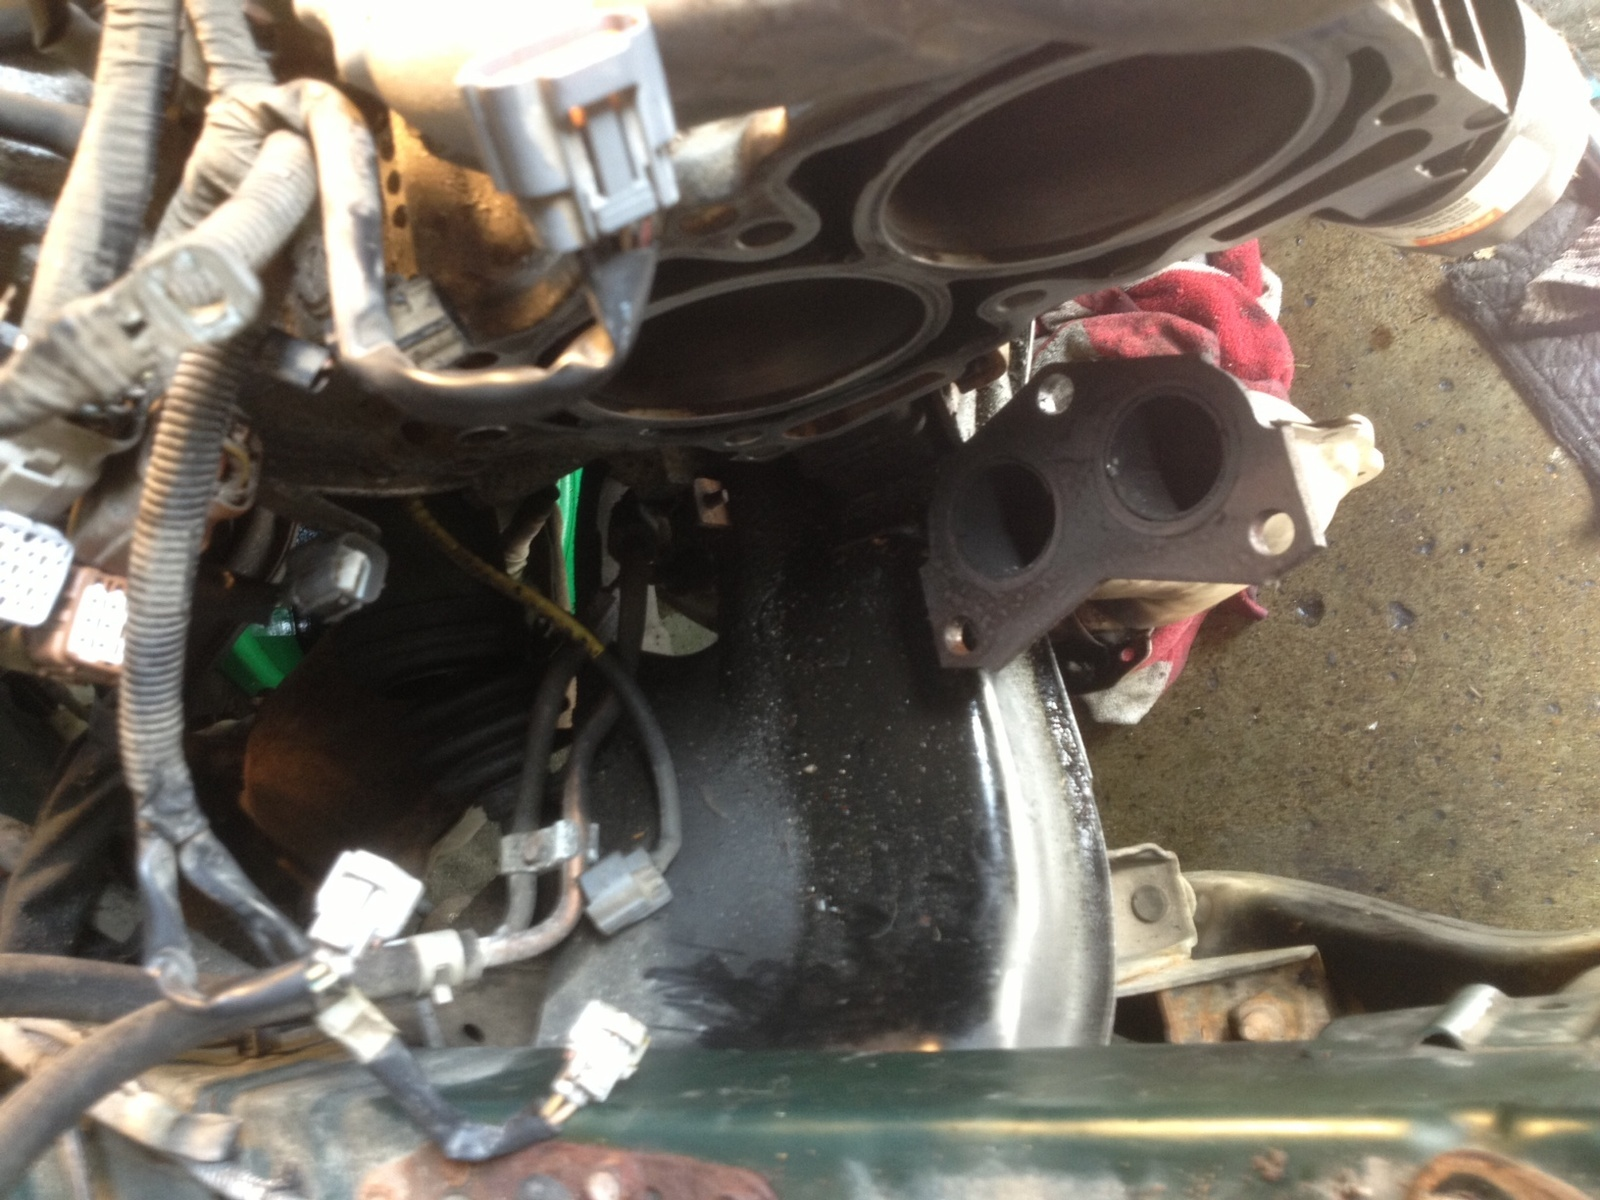 Subaru Outback Questions Burning Oil Blown Head Gasket Front 2000 Pcv Valve Location 15 Answers